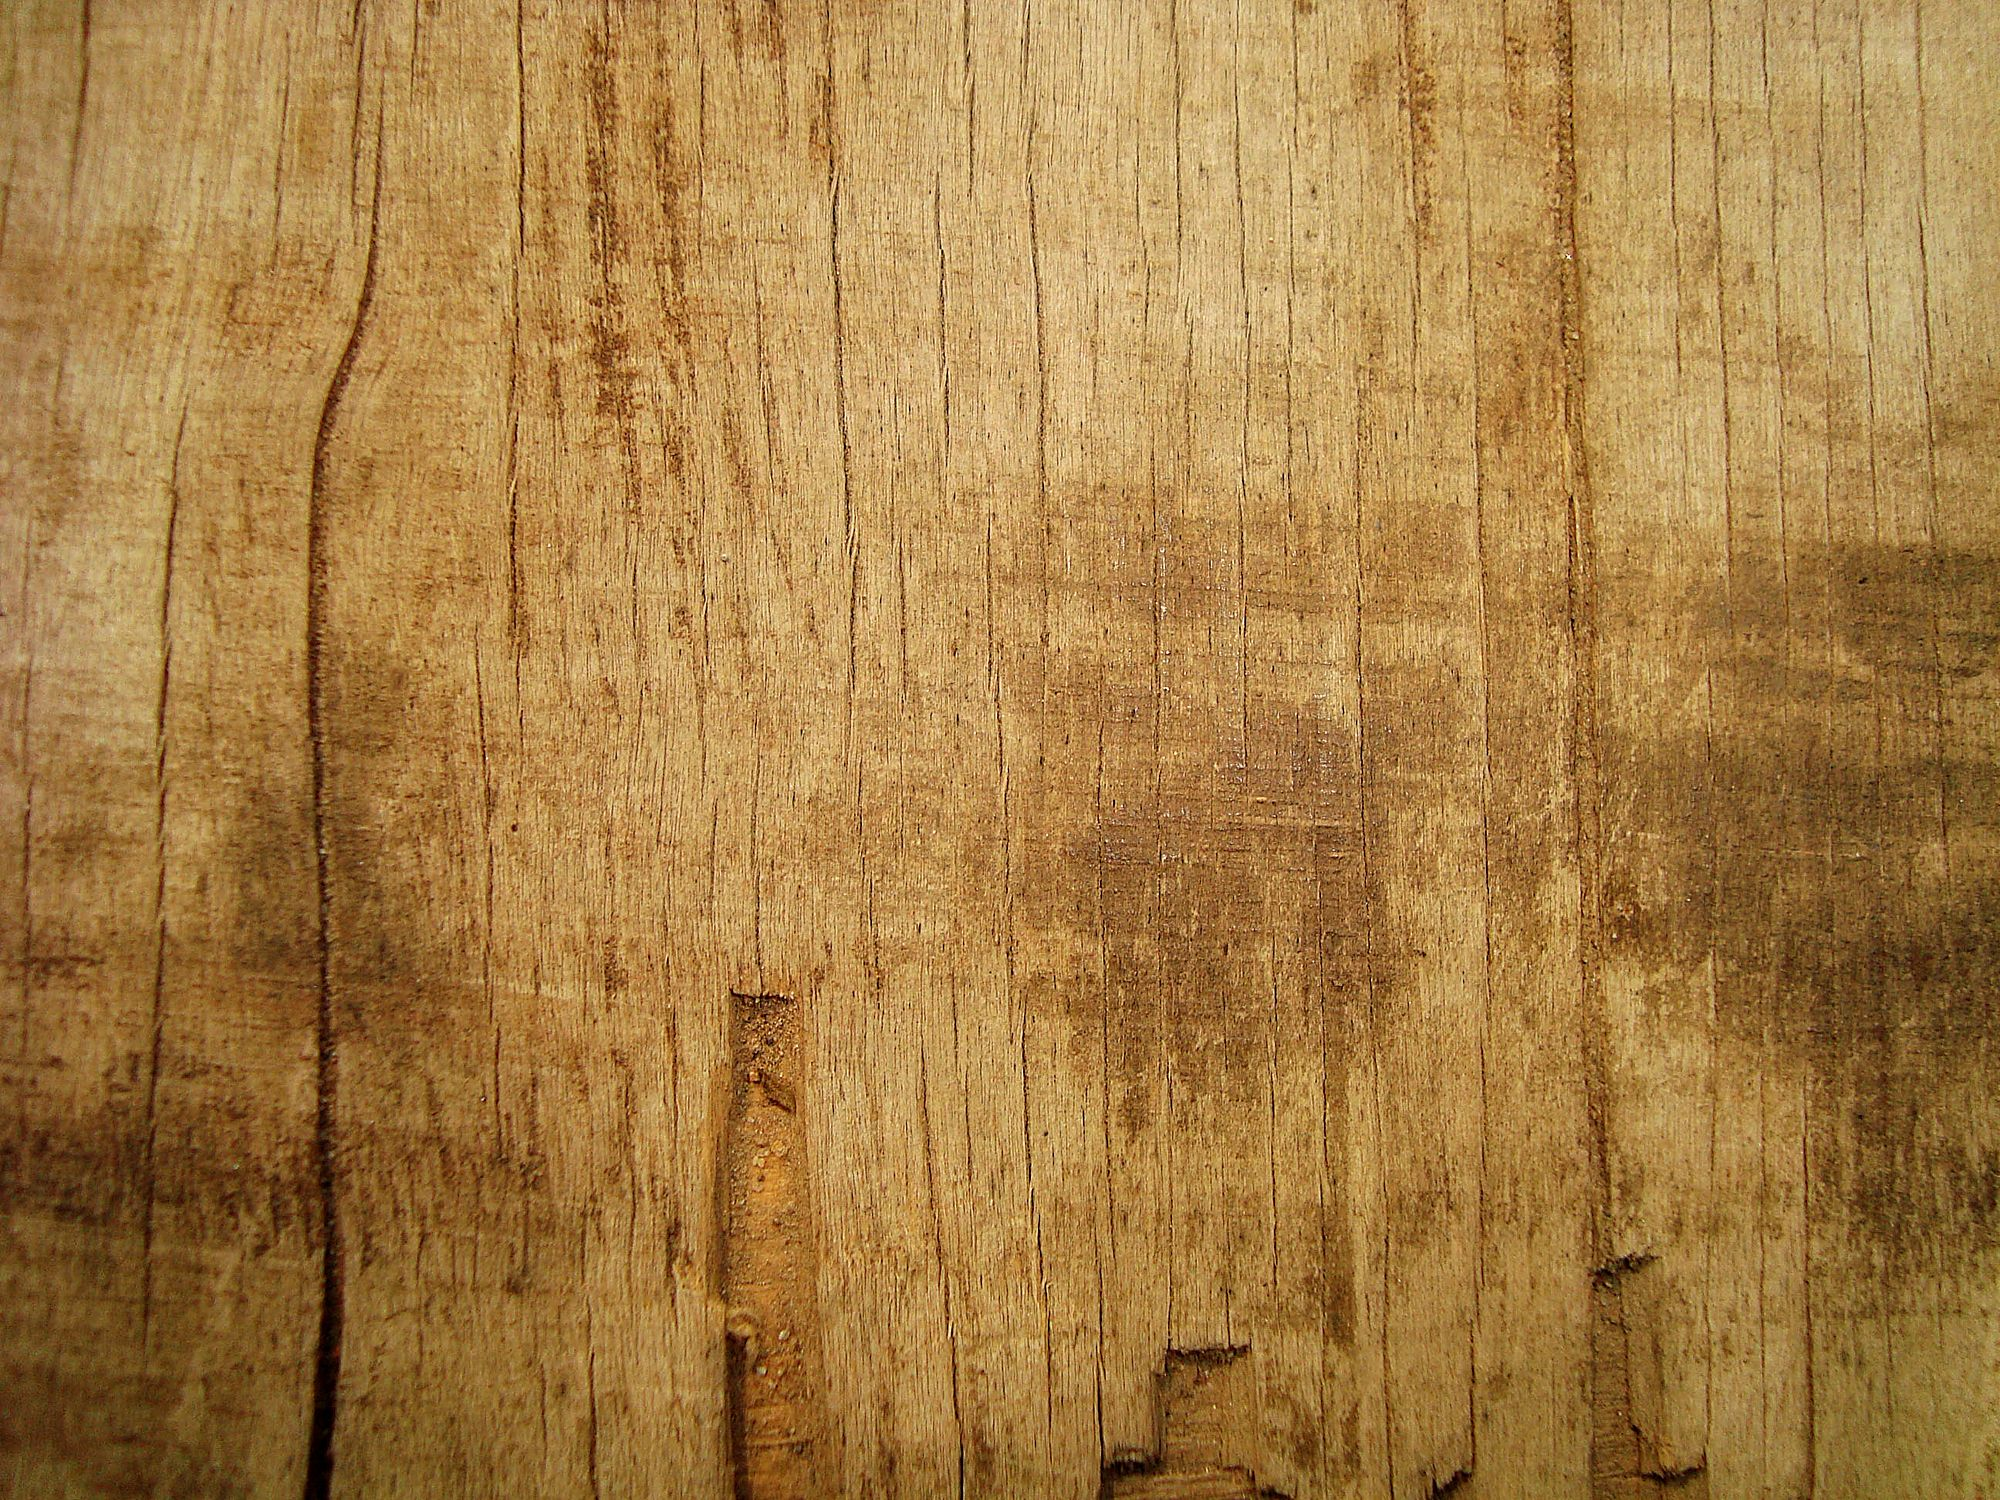 Wood background texture wooden tiles free image wood background - Explore Wood Background Wood Texture And More